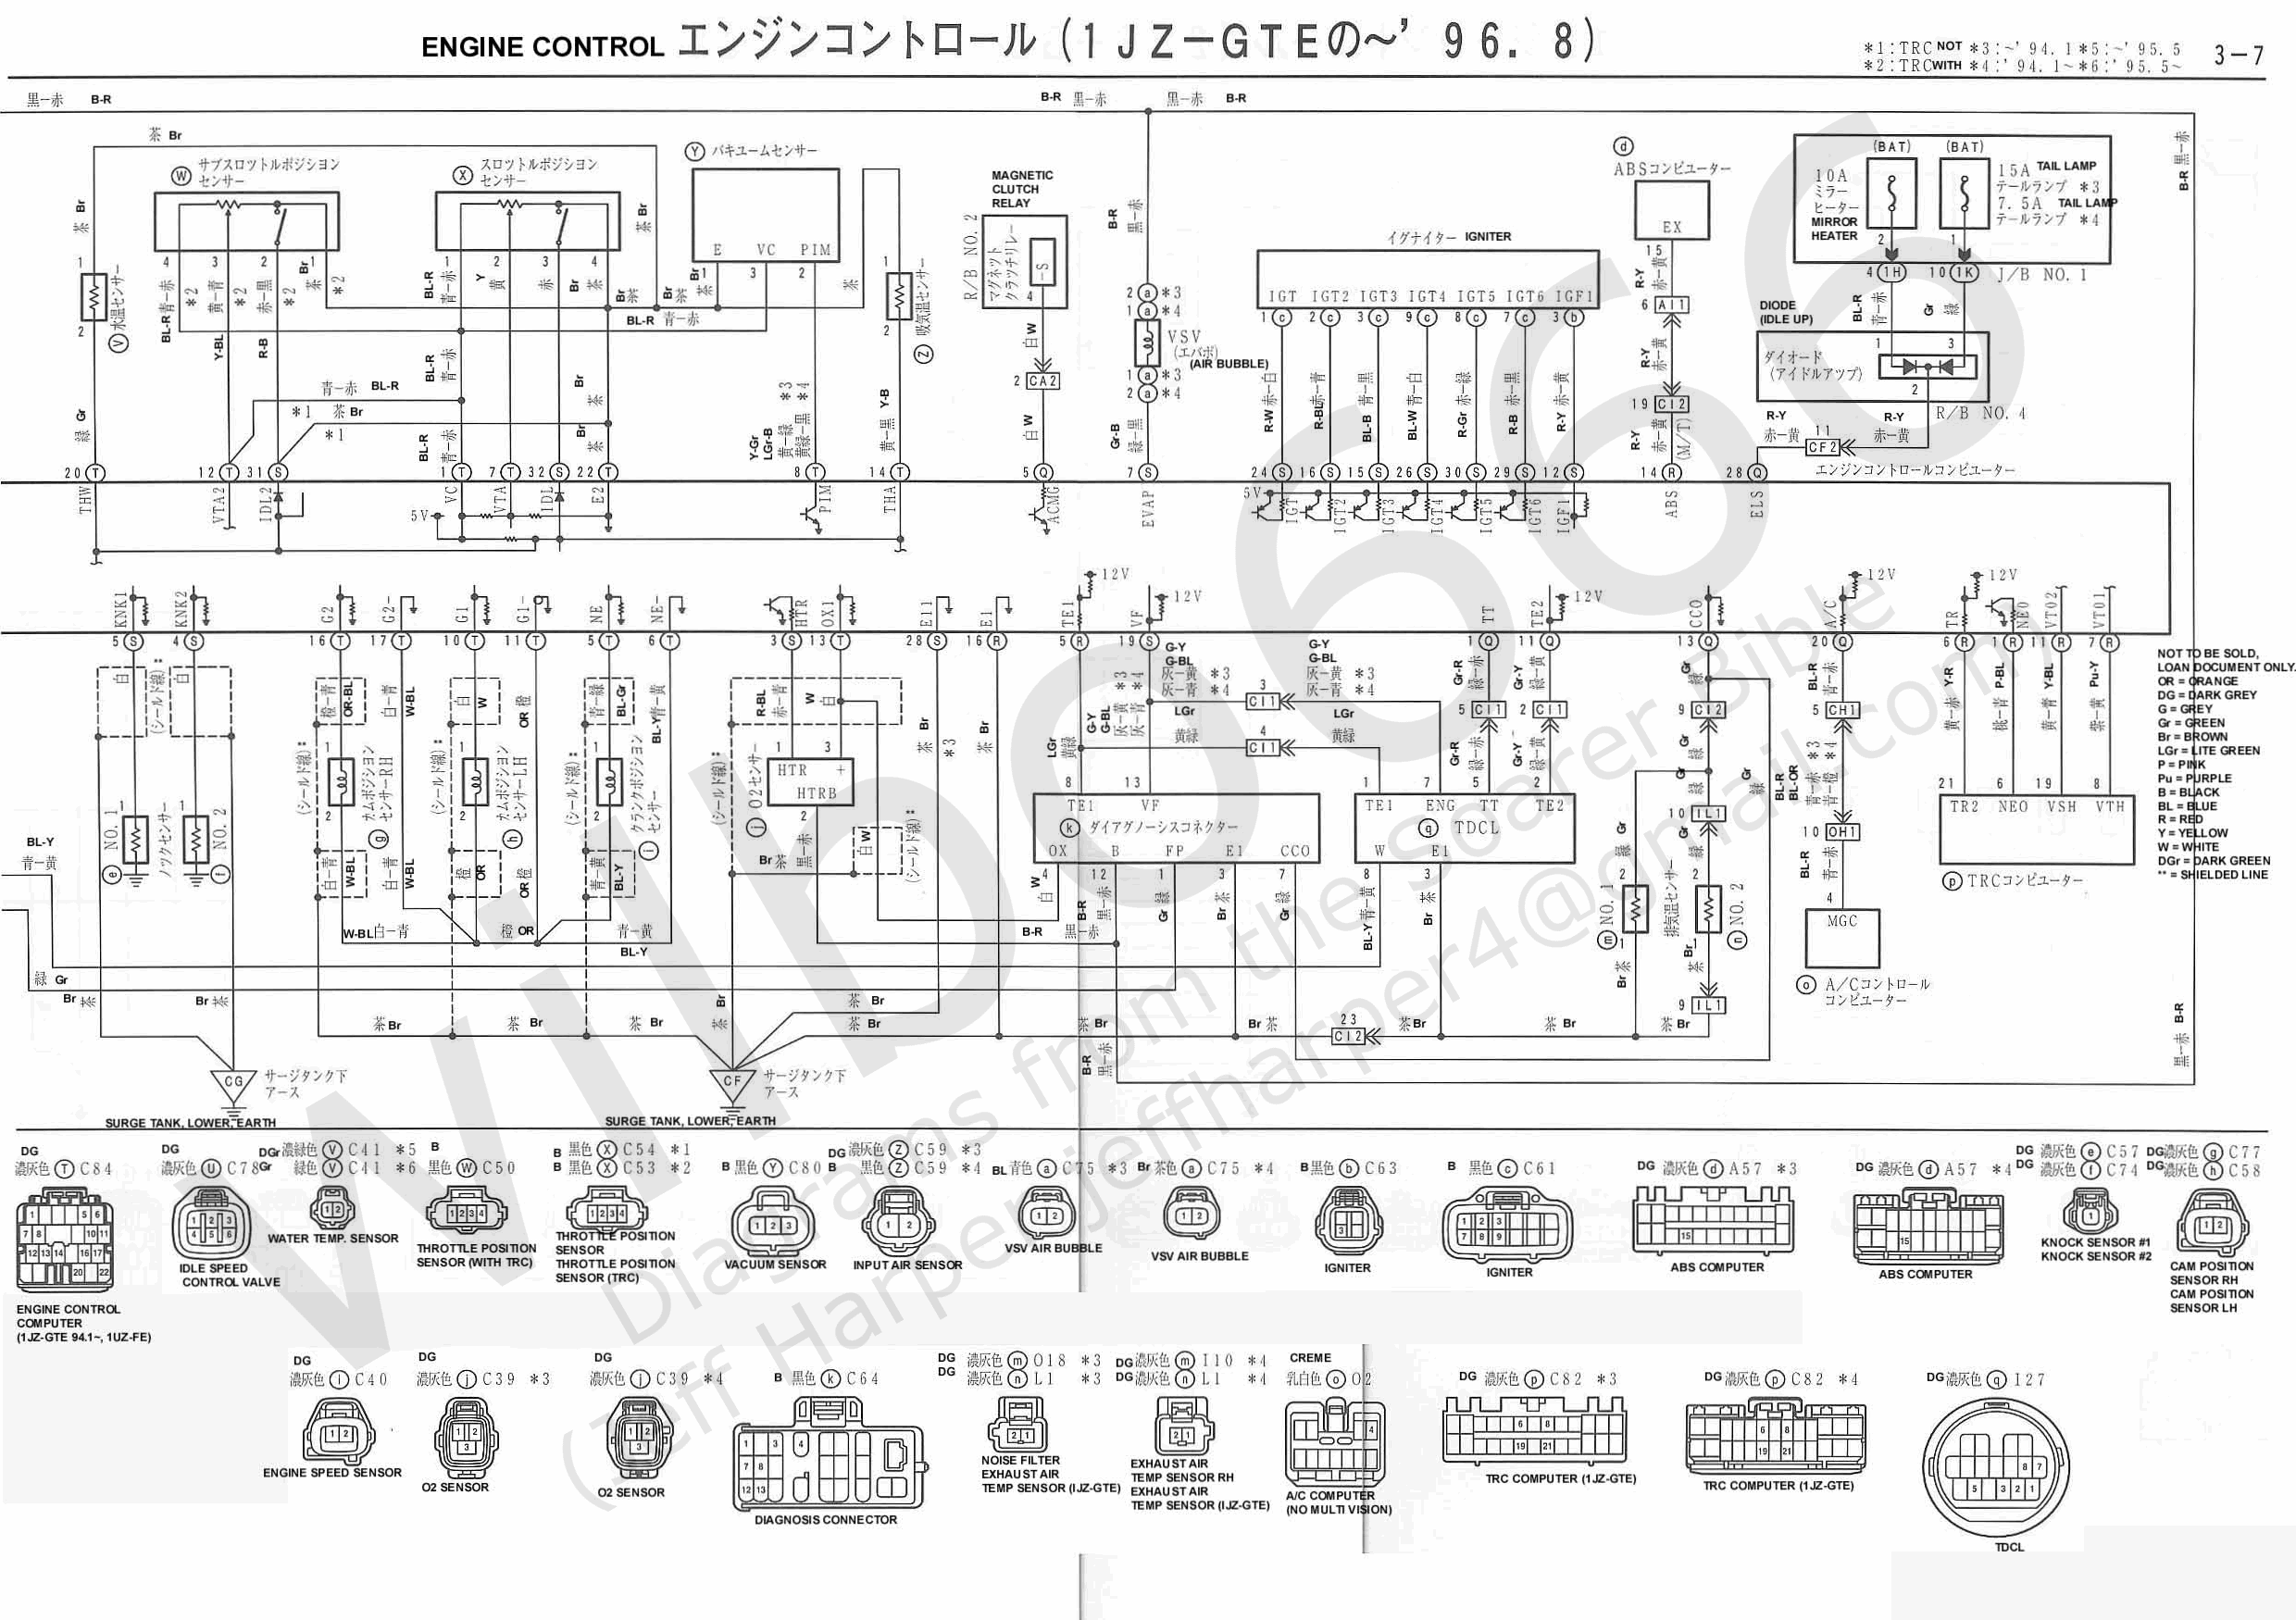 2005 Cadillac Fuel Injector Wiring Diagram Trusted Diagrams Trim 1jz Smart U2022